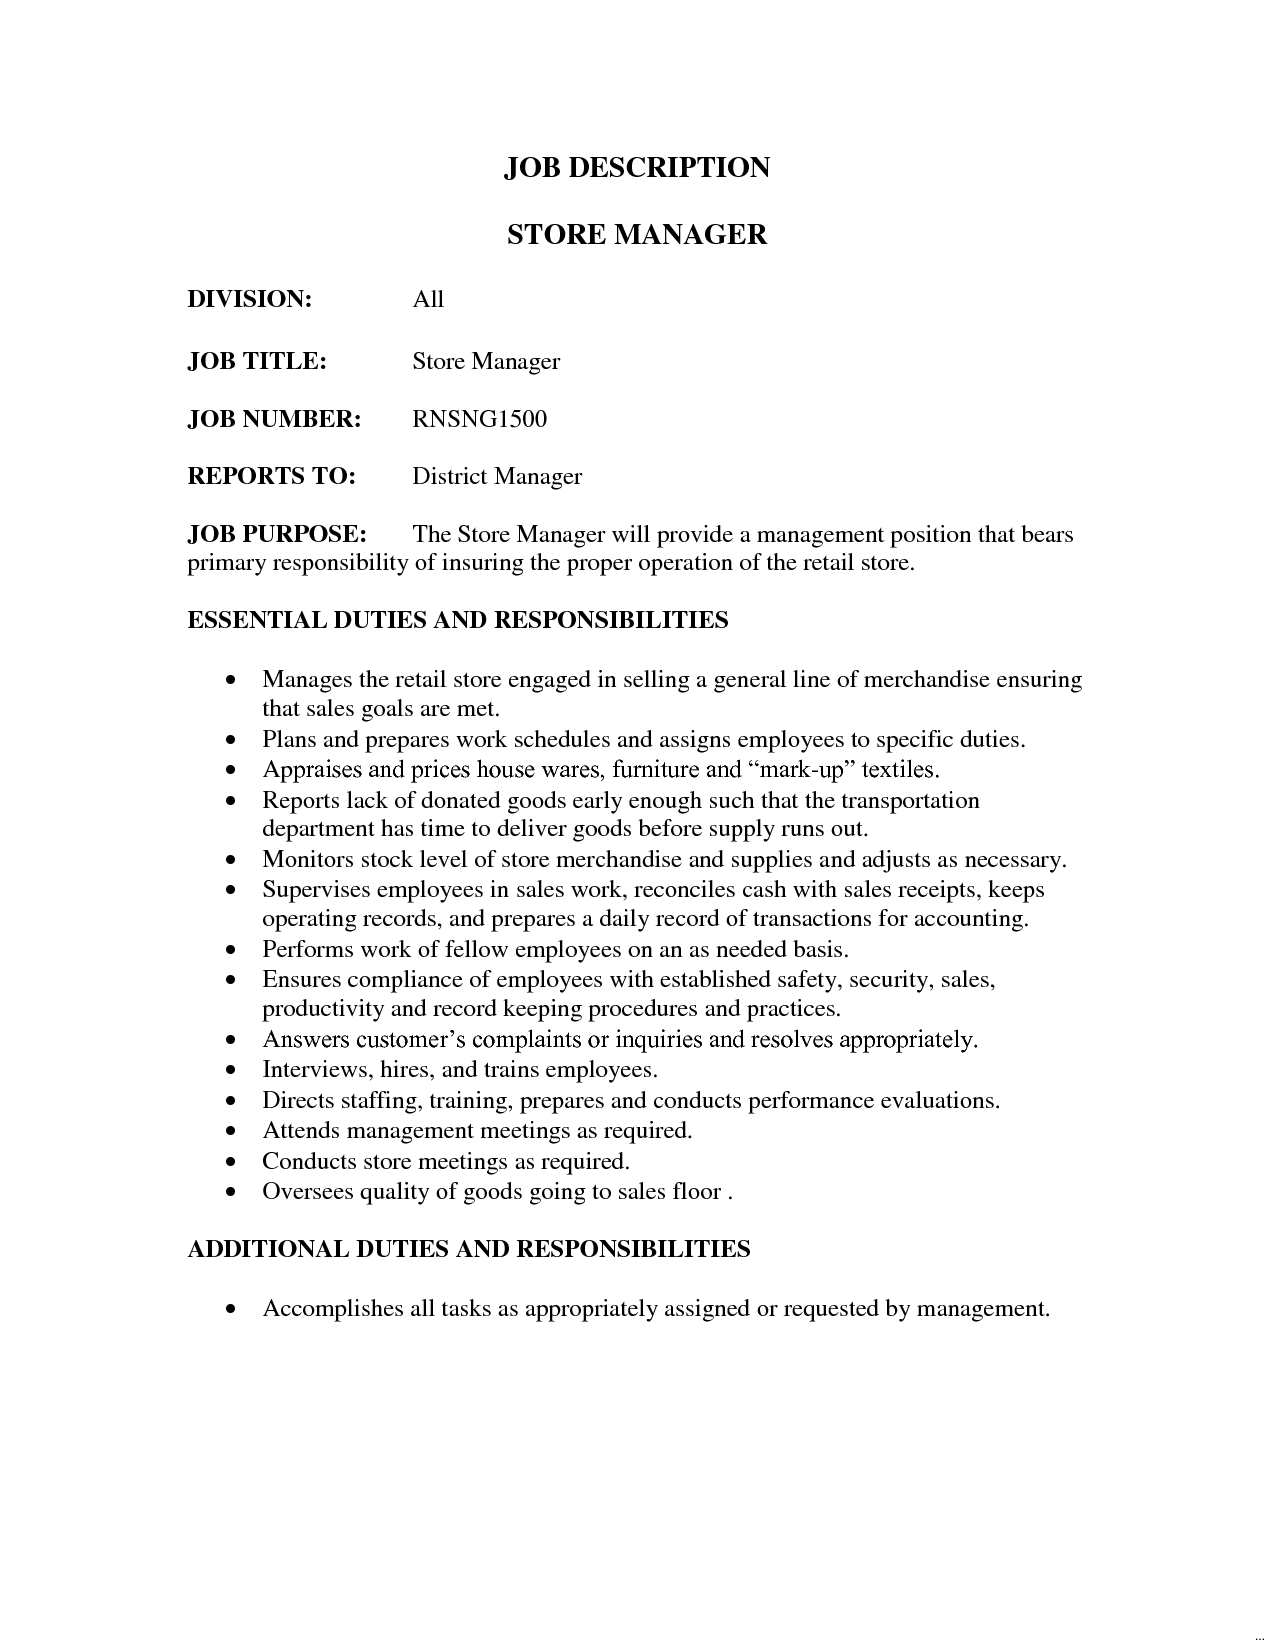 Resume For Retail Jobs Retail Job Description Revolutionary Store Manager Sales Resume .